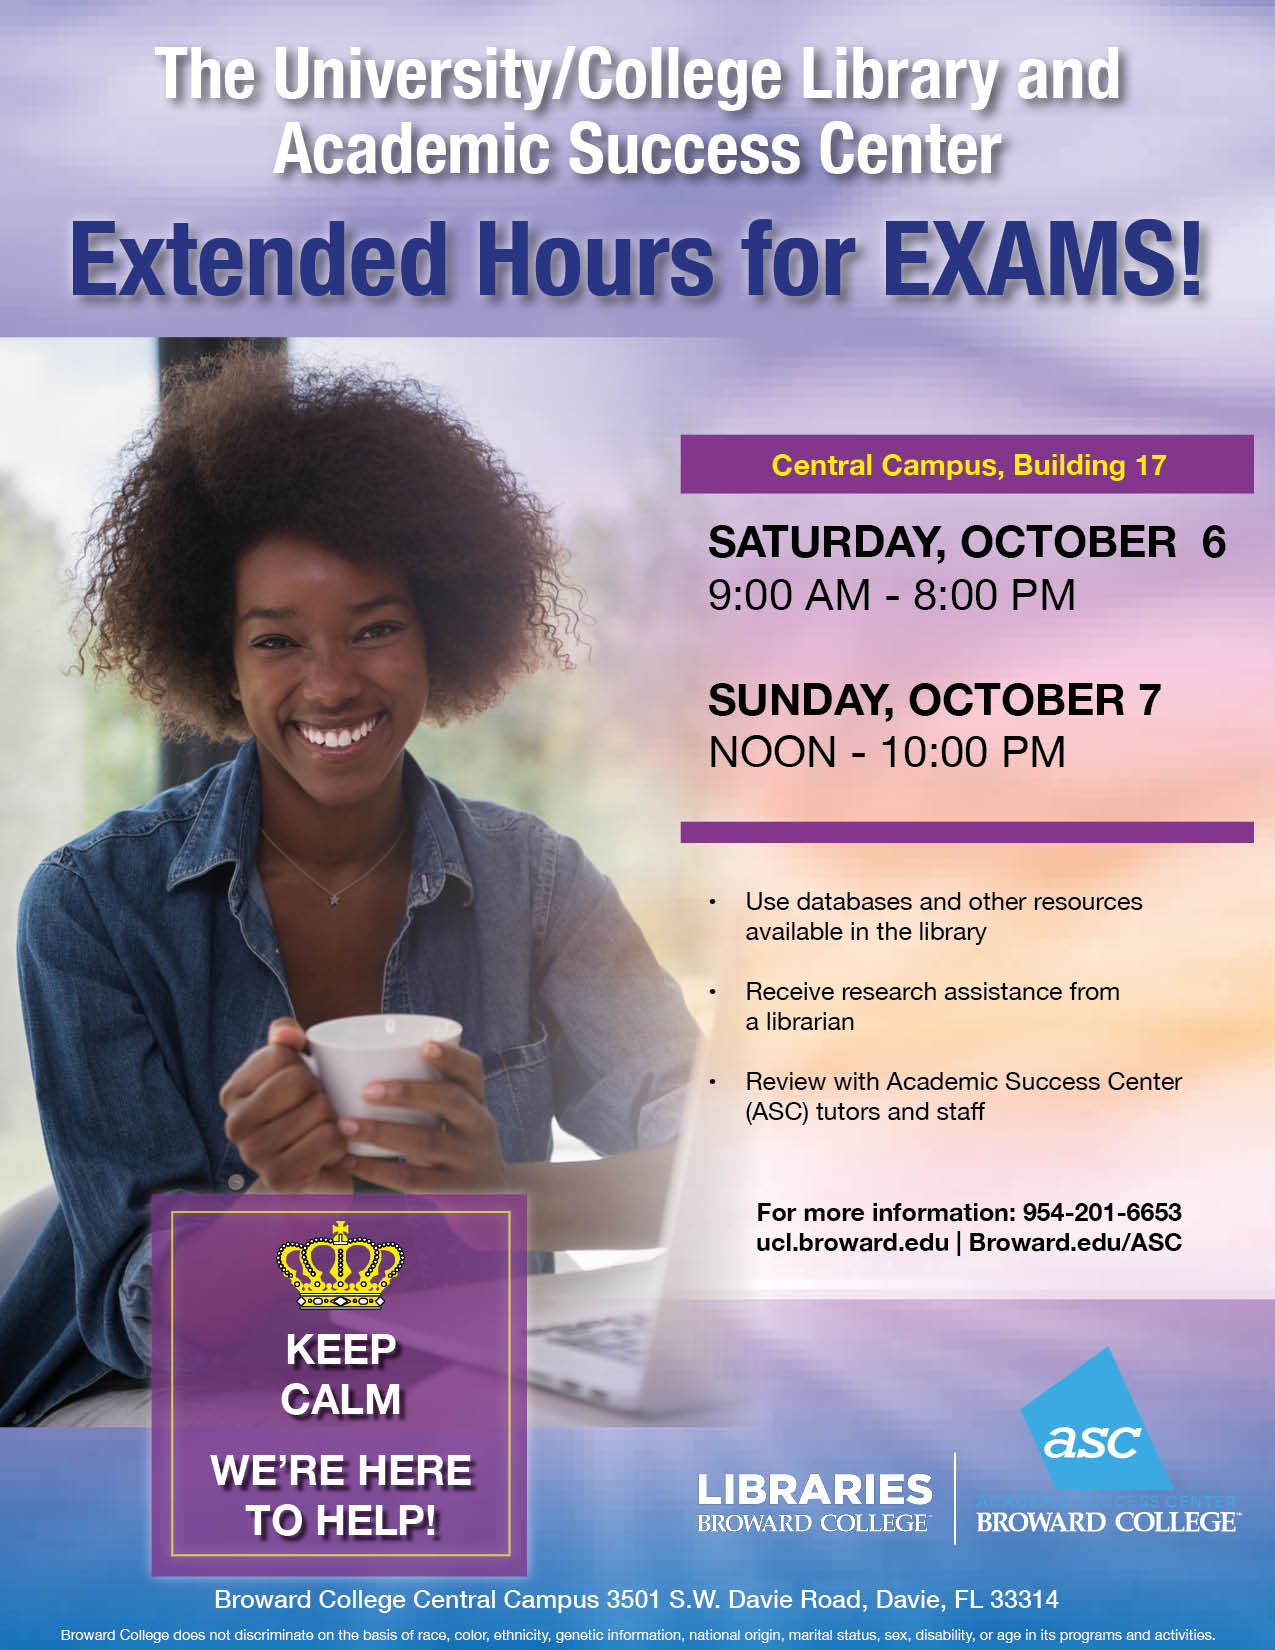 University/College Library Extended Hours: 9am- 8pm